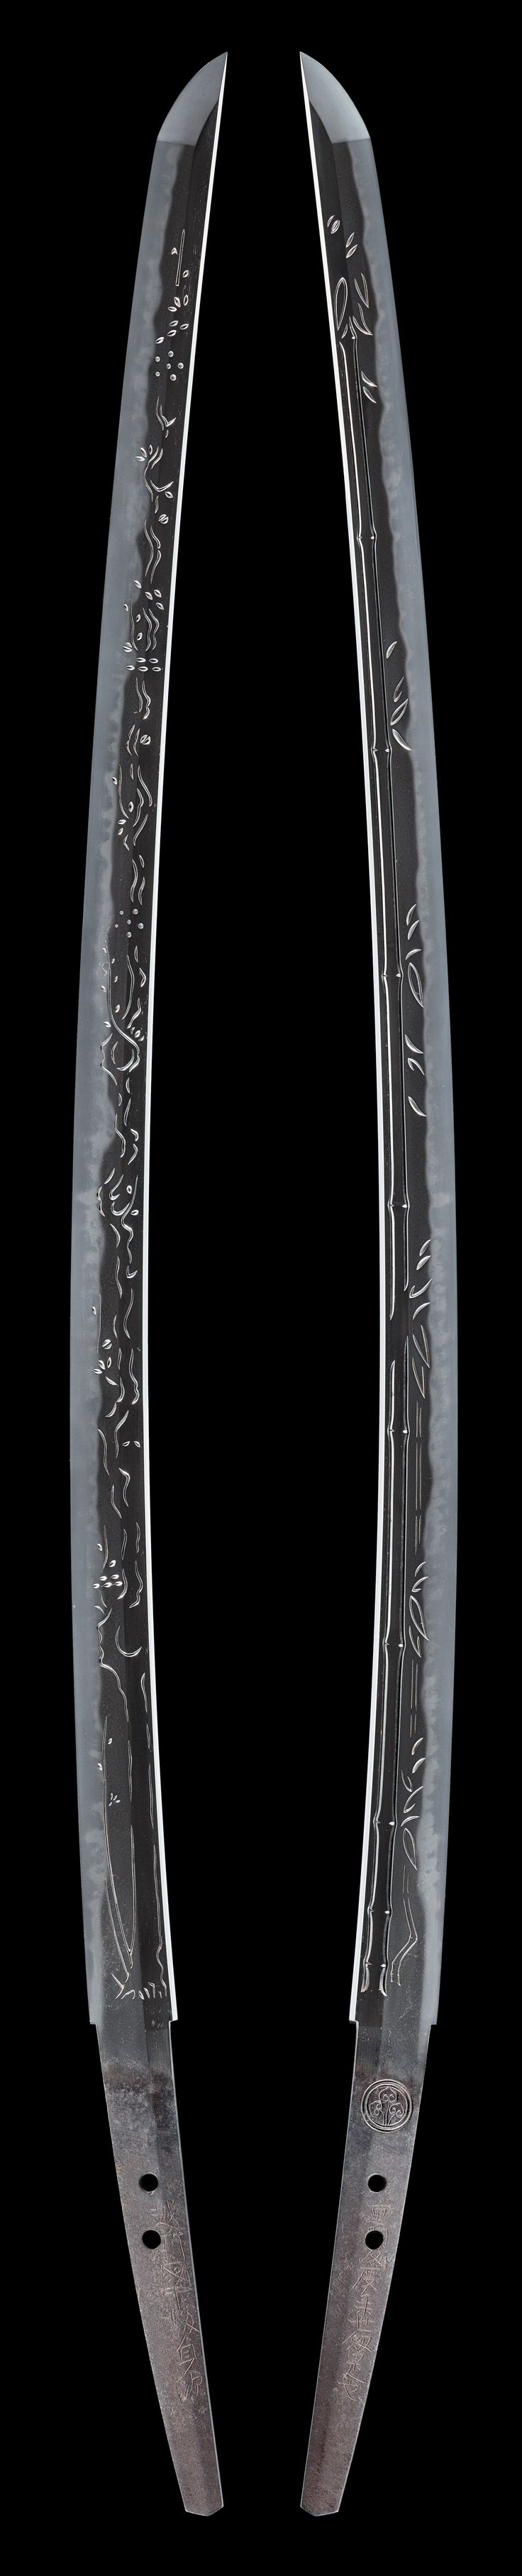 """Full length 'Kinai-Bori' or 'Echizen-Bori' carving on an Echizen katana. It appears to be inscribed with a name: """"Sword of the Last Days."""""""